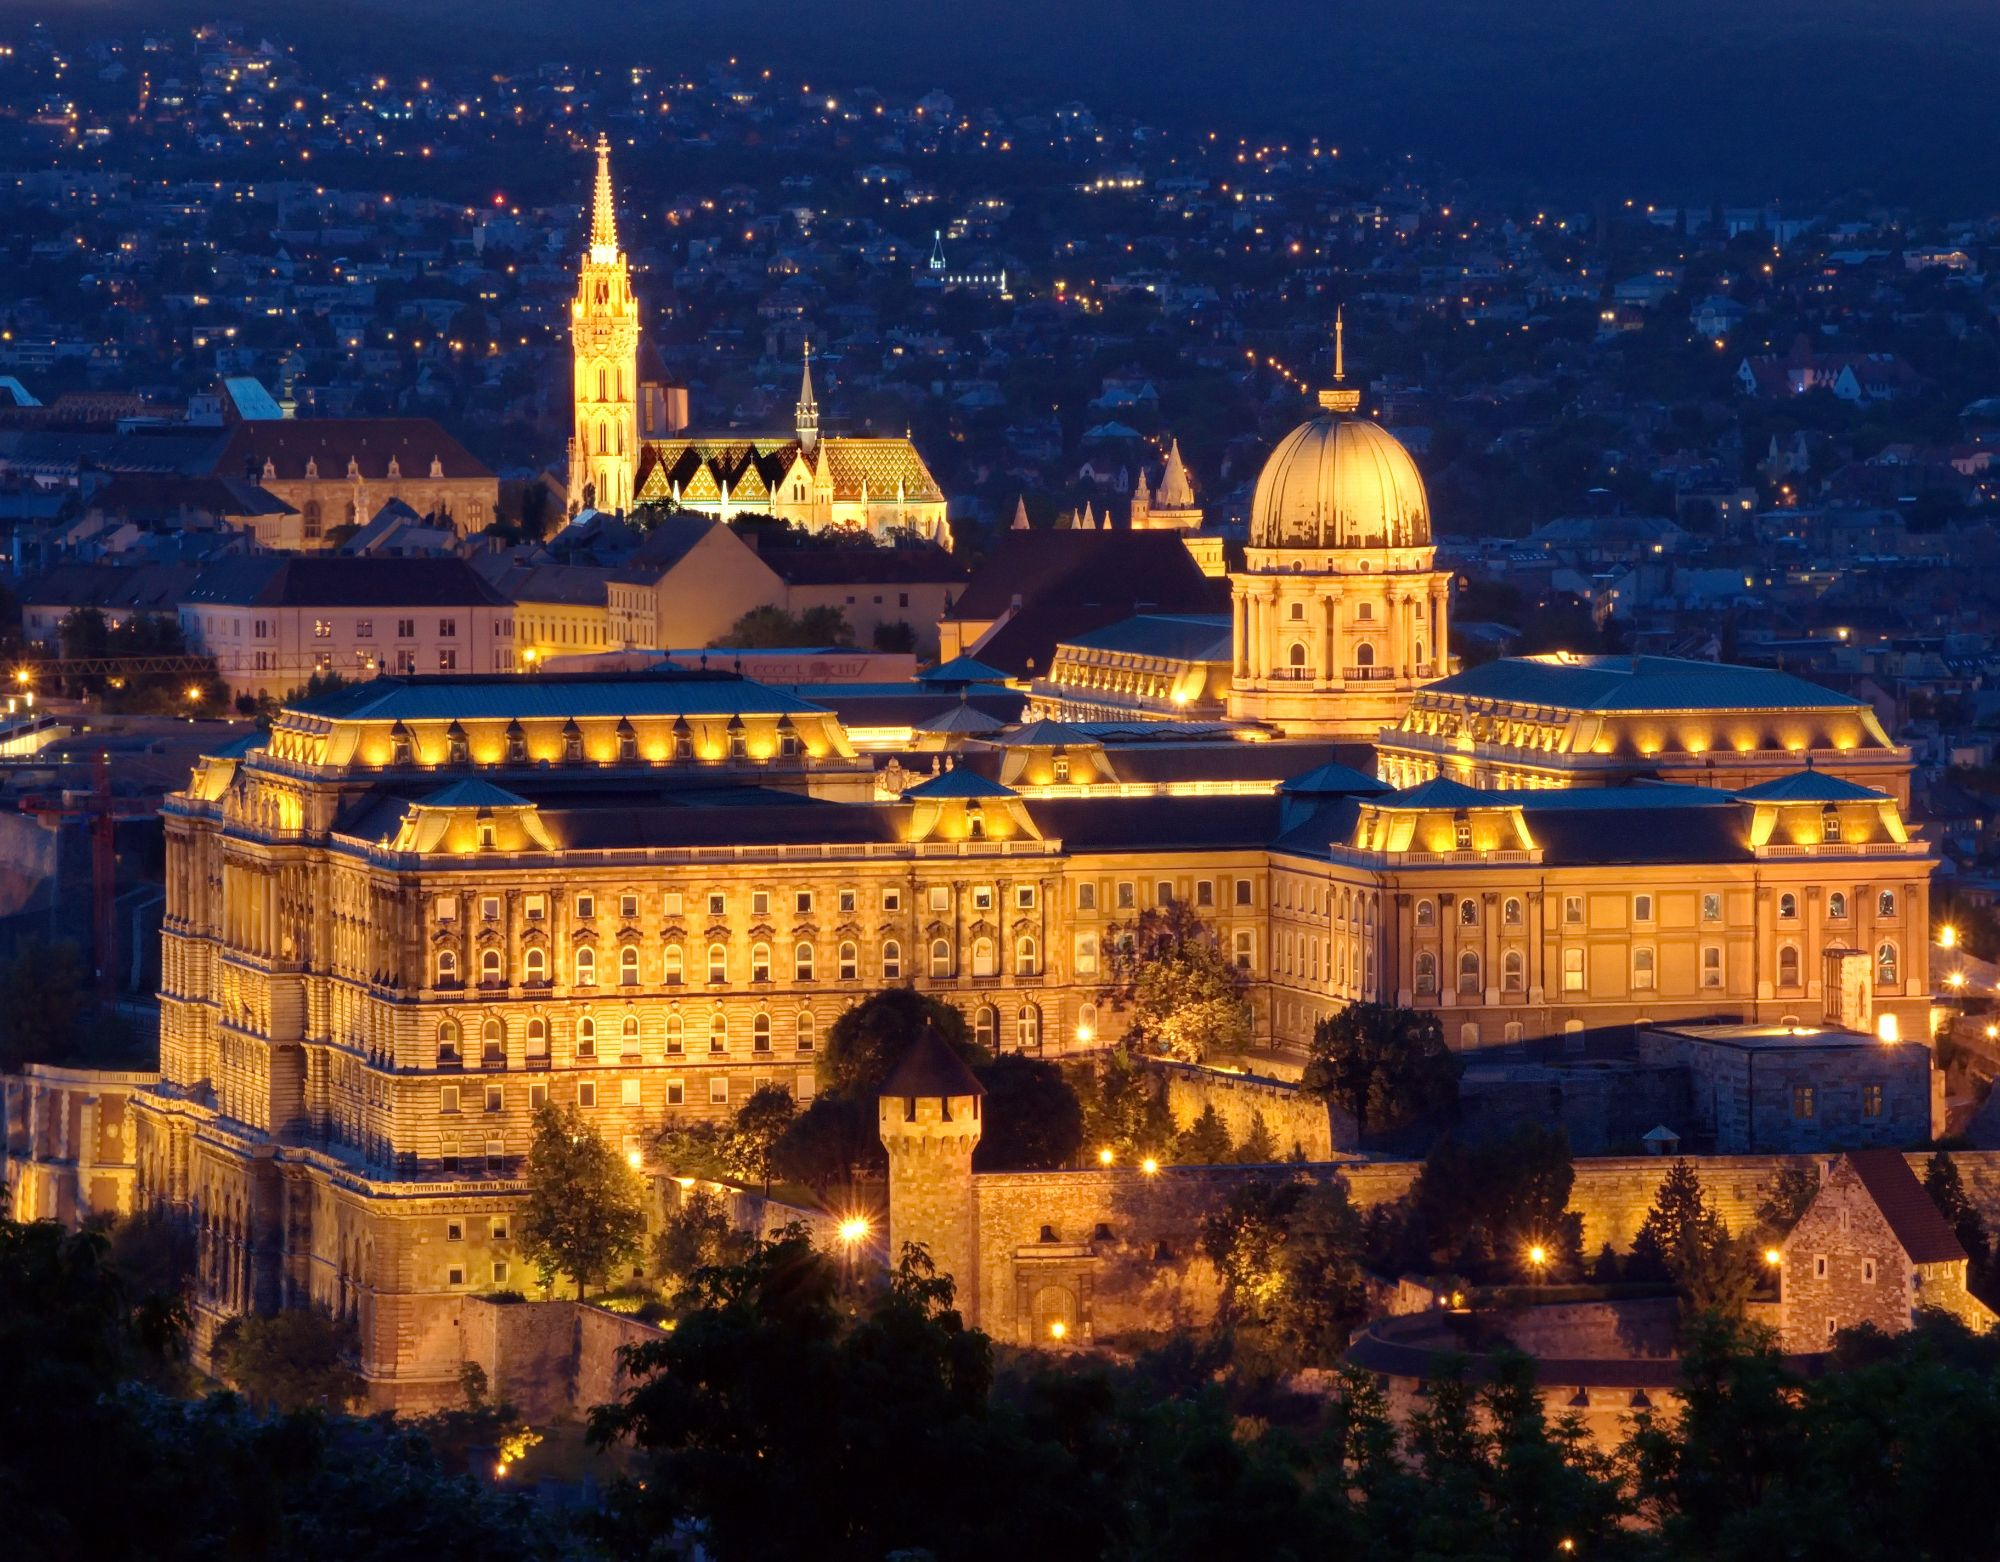 Royal Palace in Budapest at night